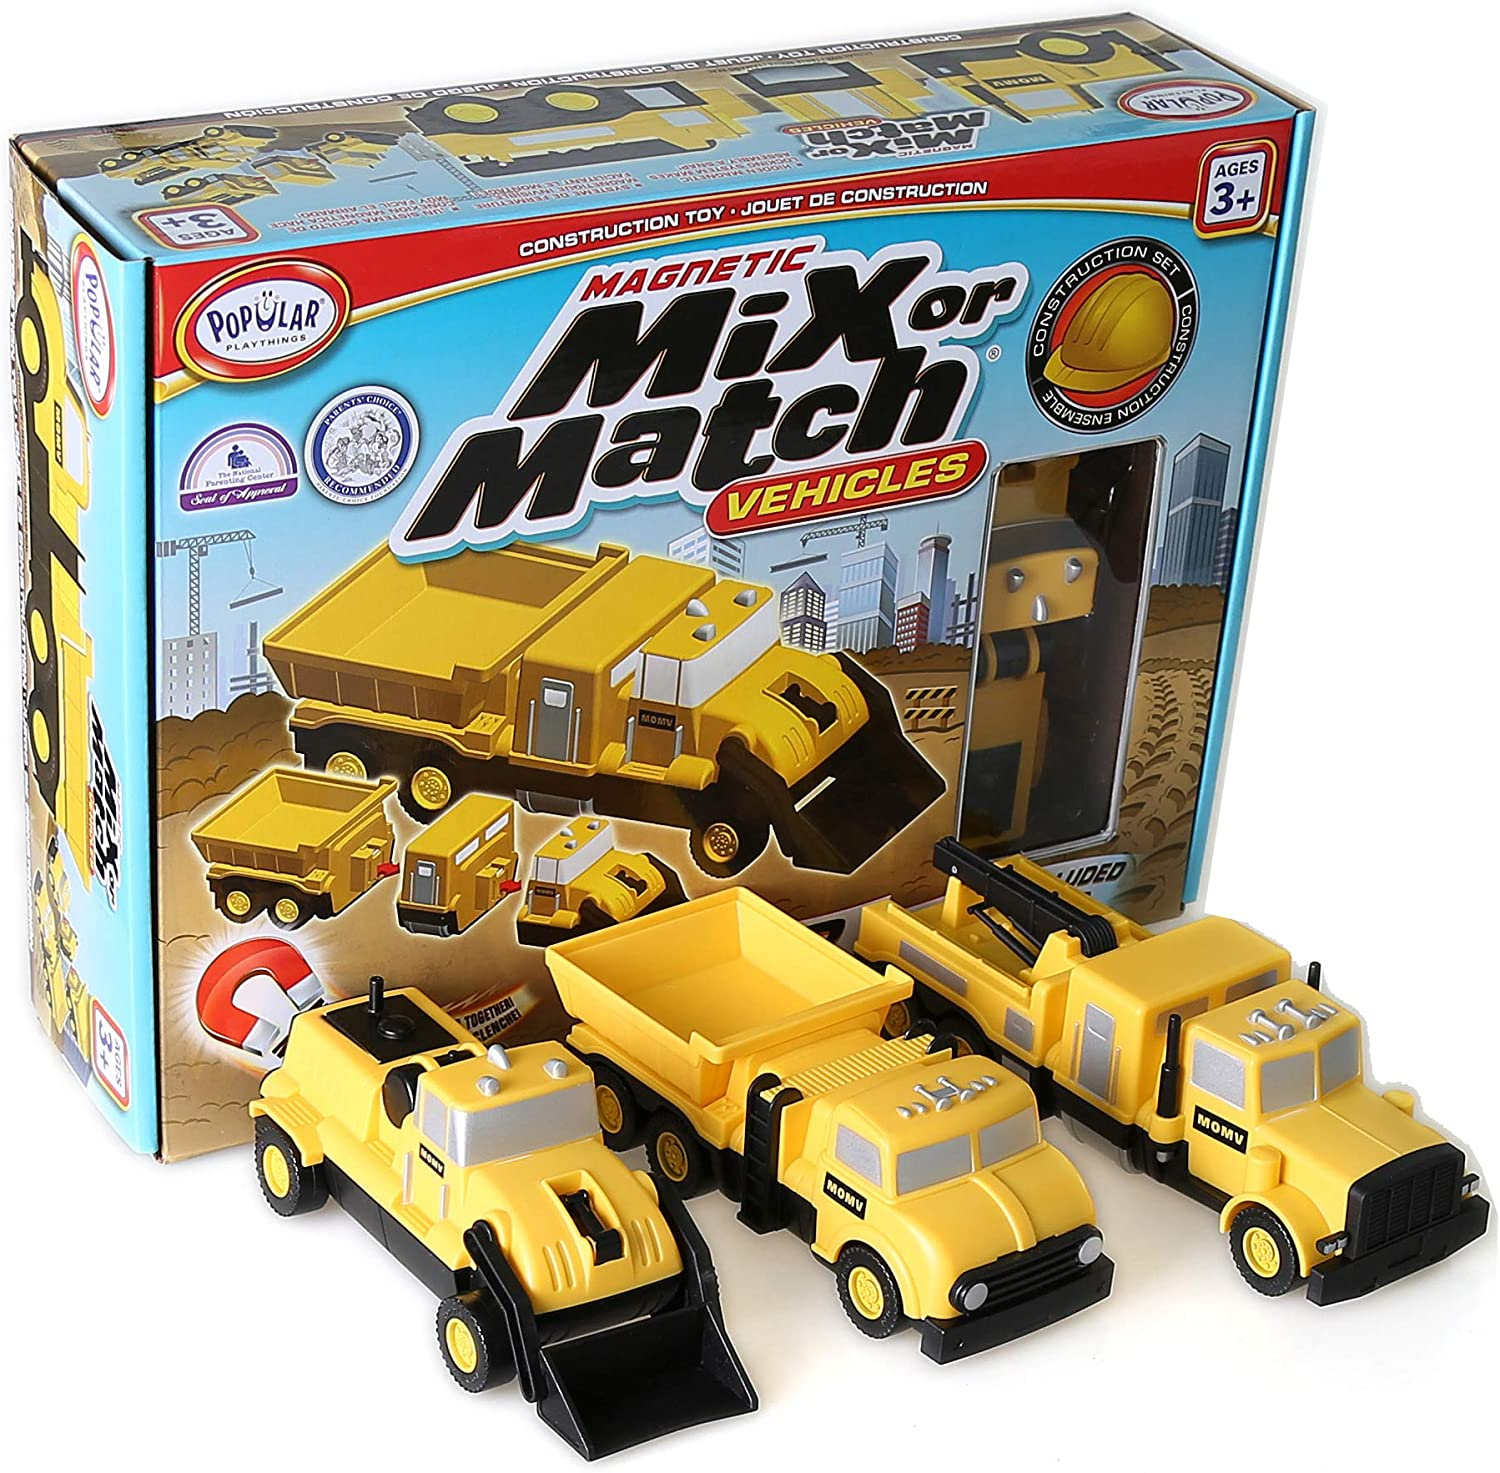 Mix or Match - Construction - Building Set by Popular Playthings (60315)